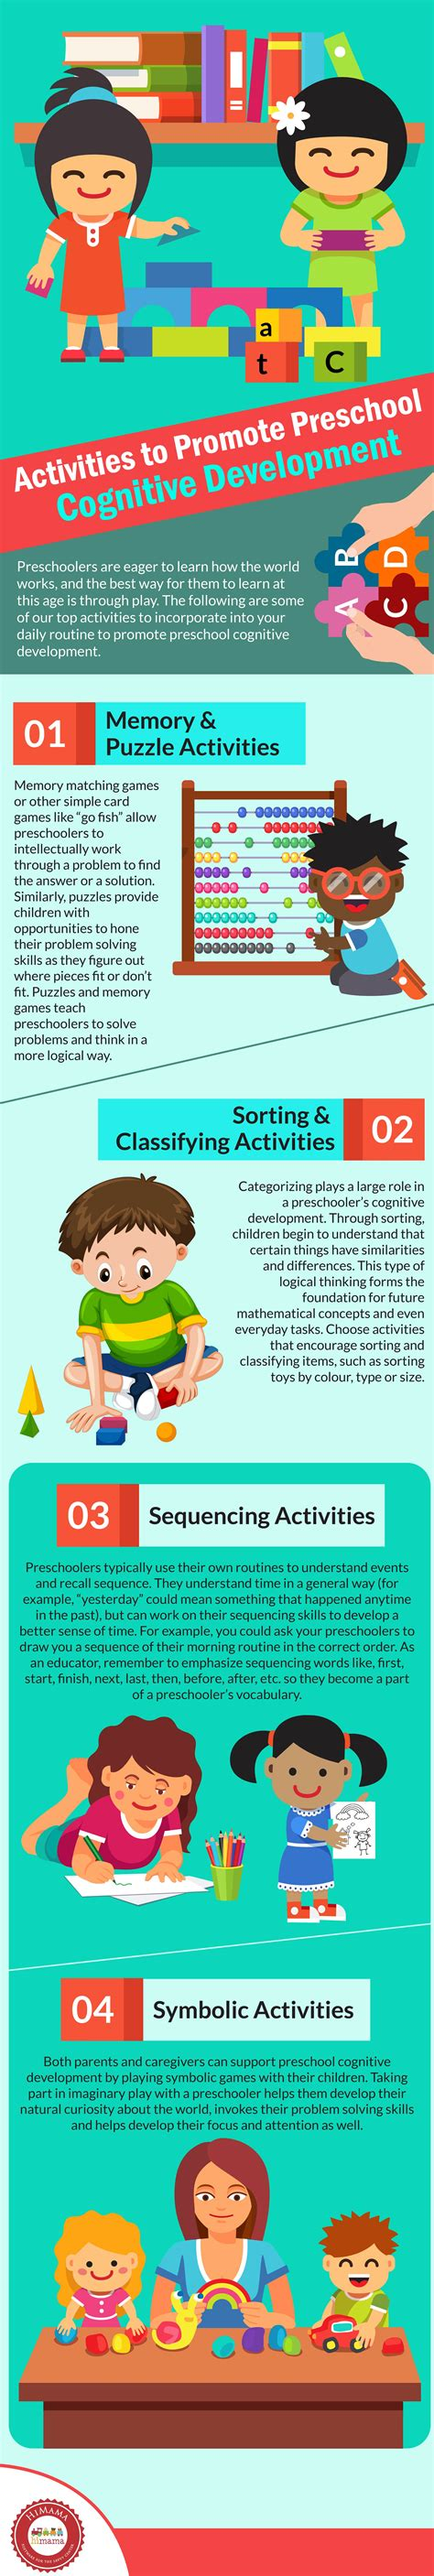 himama activities to promote preschool cognitive development 124 | HiMama Infographic Mar 2018